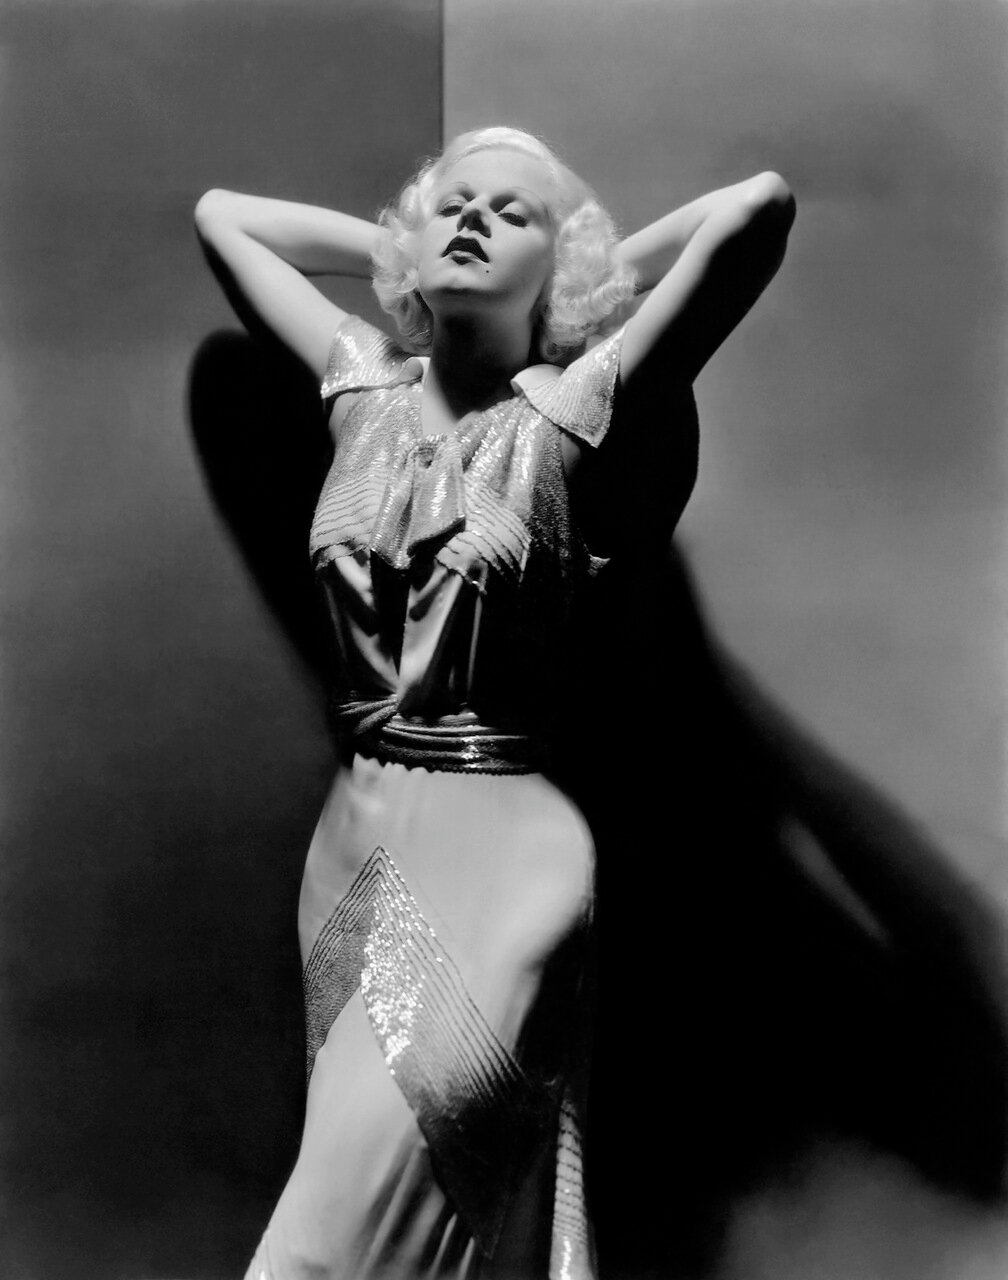 6th September 1933: American actress Jean Harlow. (Photo by George Hurrell)